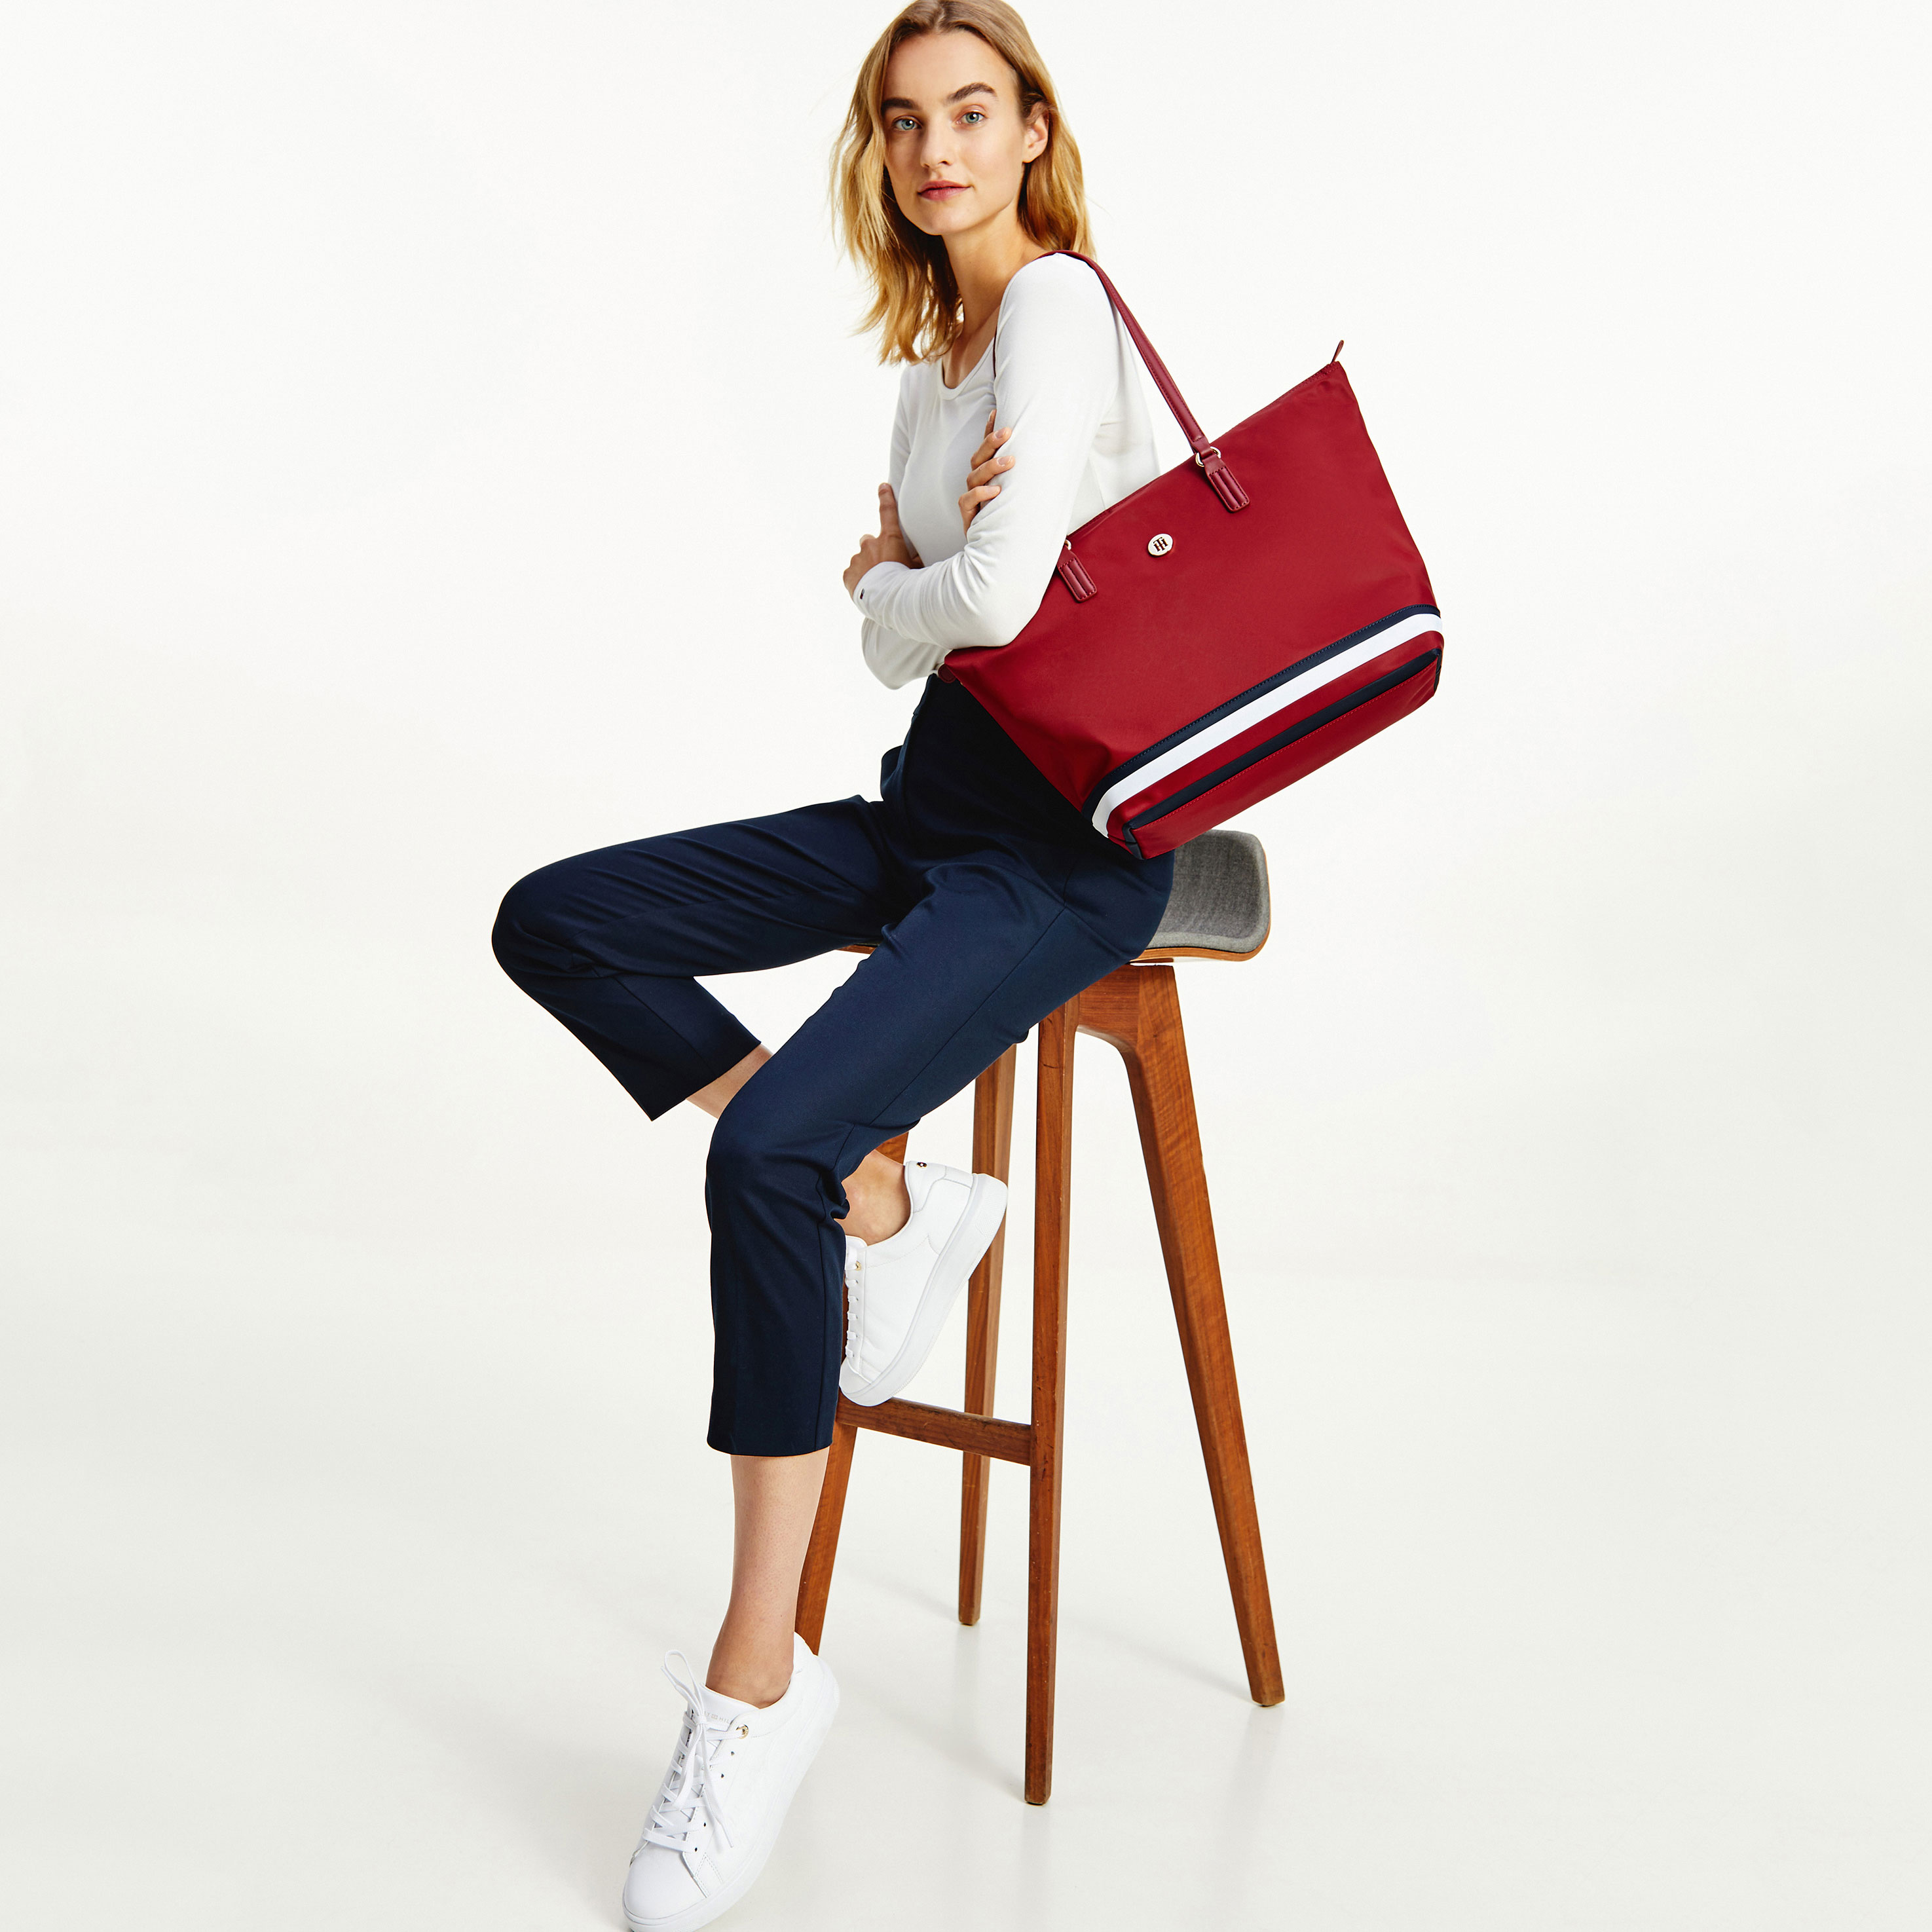 TOMMY HILFIGER Marroquinería Bolso Poppy Tote Corp AW0AW10437-XIT